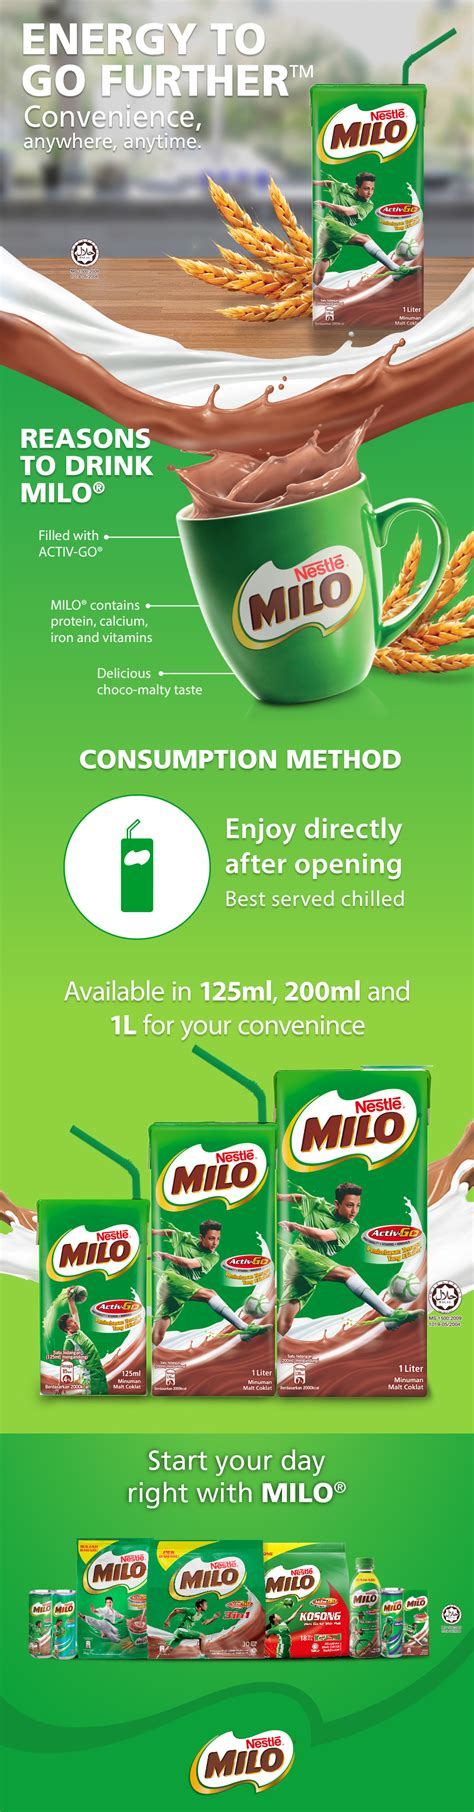 Uht 125ml Cereal milo uht 200ml 24unit free 1 lunch end 7 12 2018 10 15 am